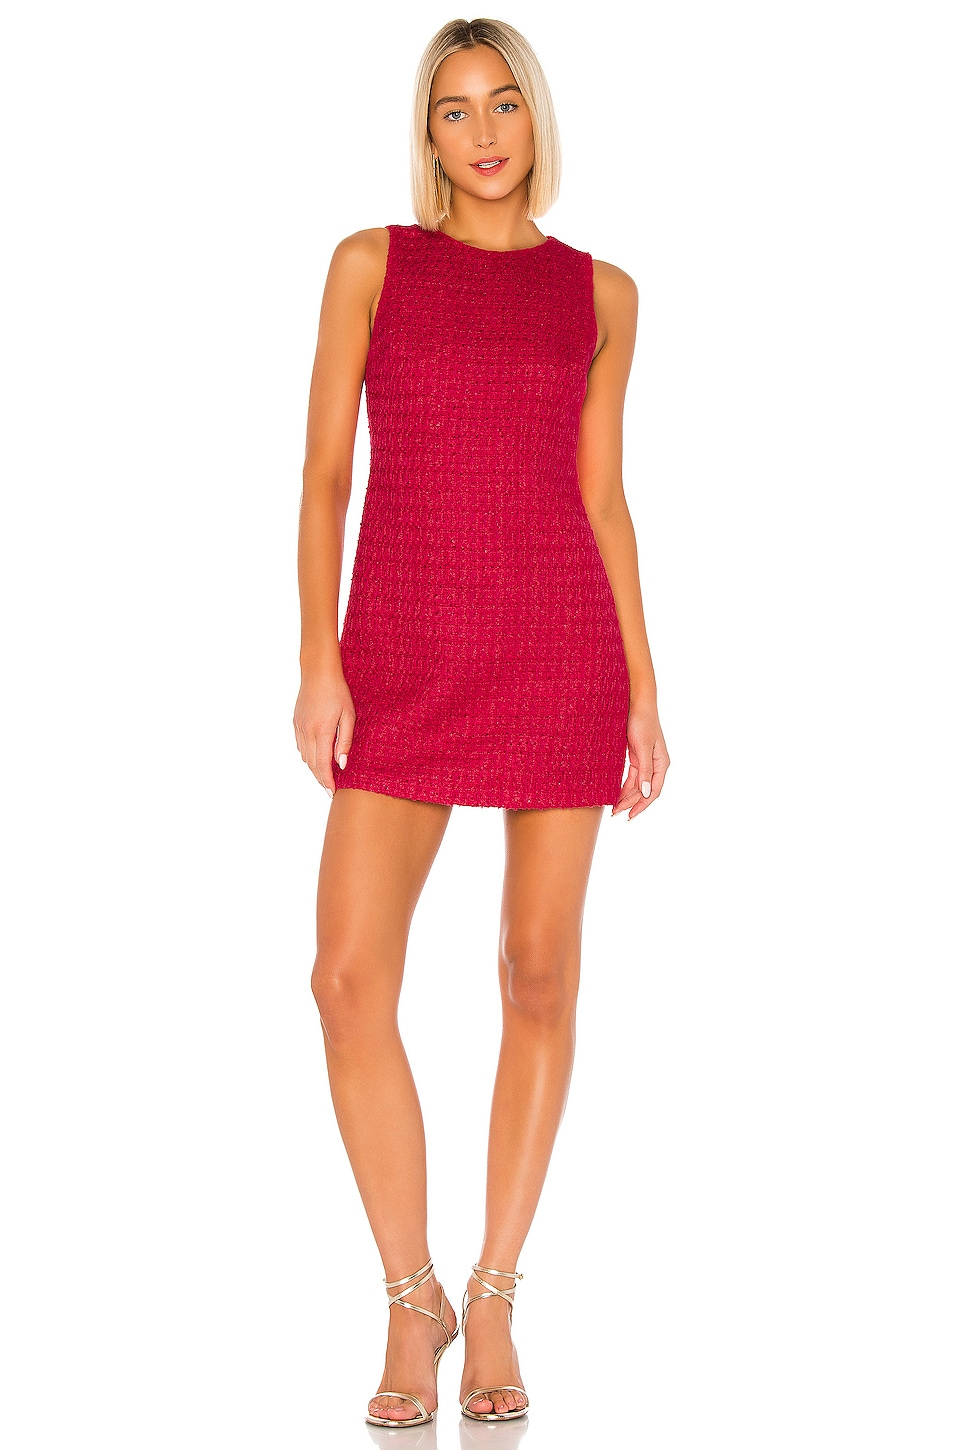 Alice + Olivia Clyde Aline Shift Dress in Bright Pink